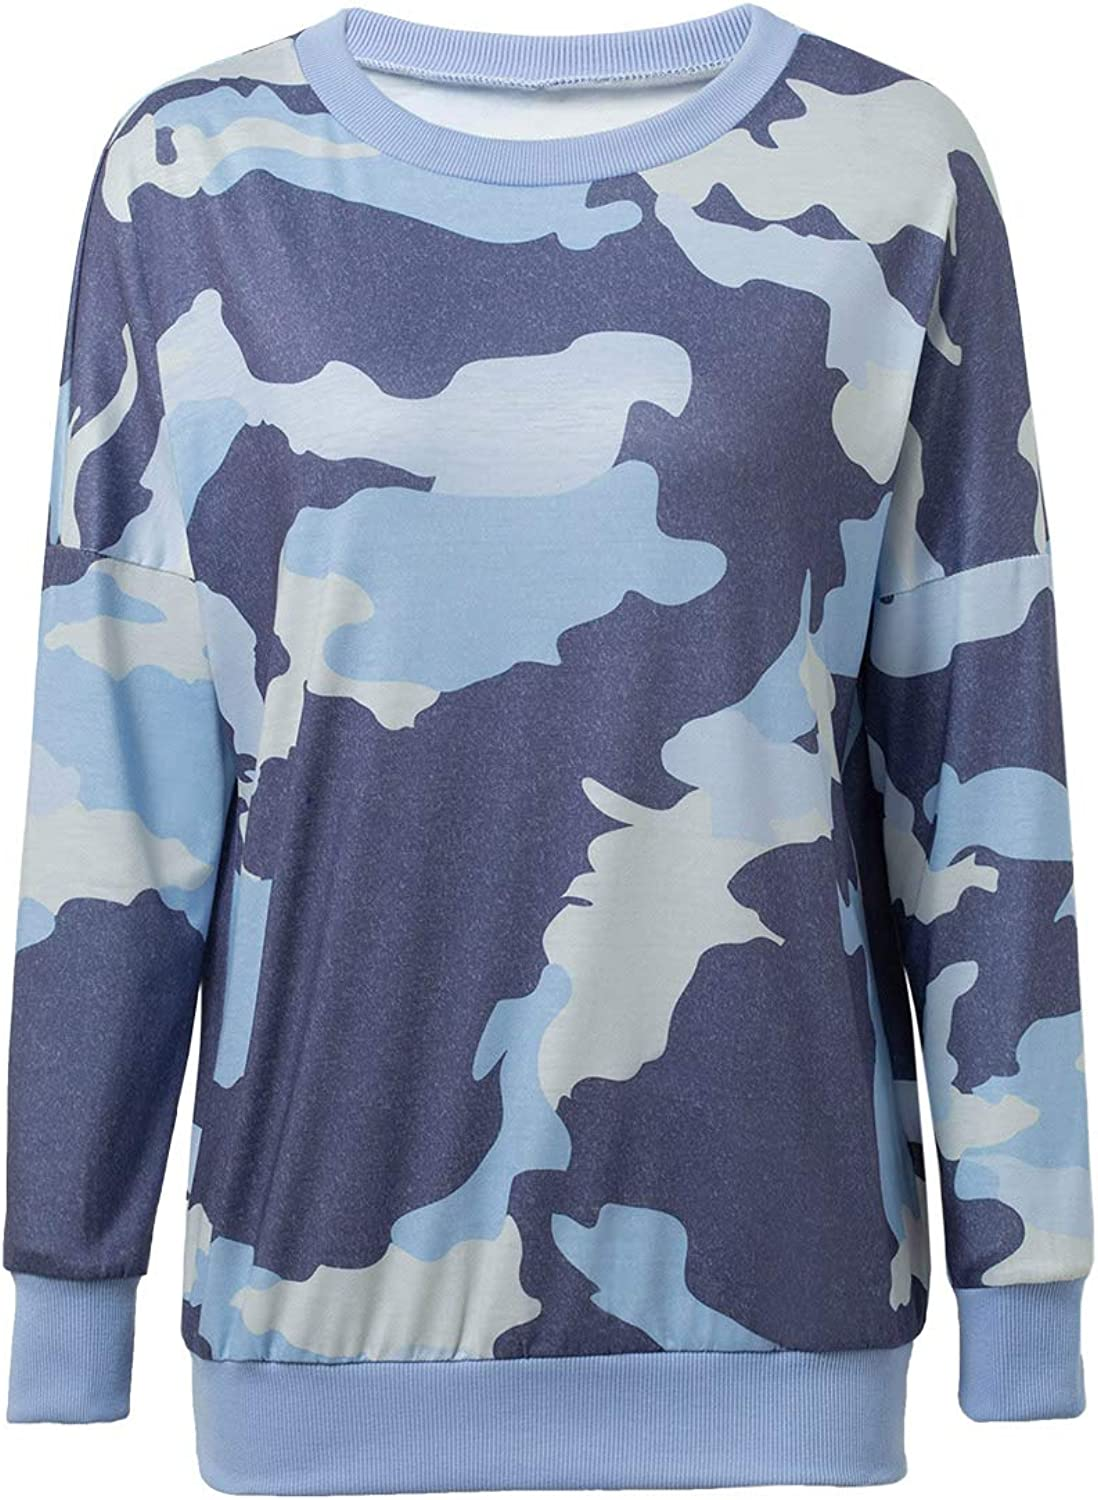 Women Camouflage Print Long Sleeve Pullover Sweatshirt Top Casual Pants Trousers